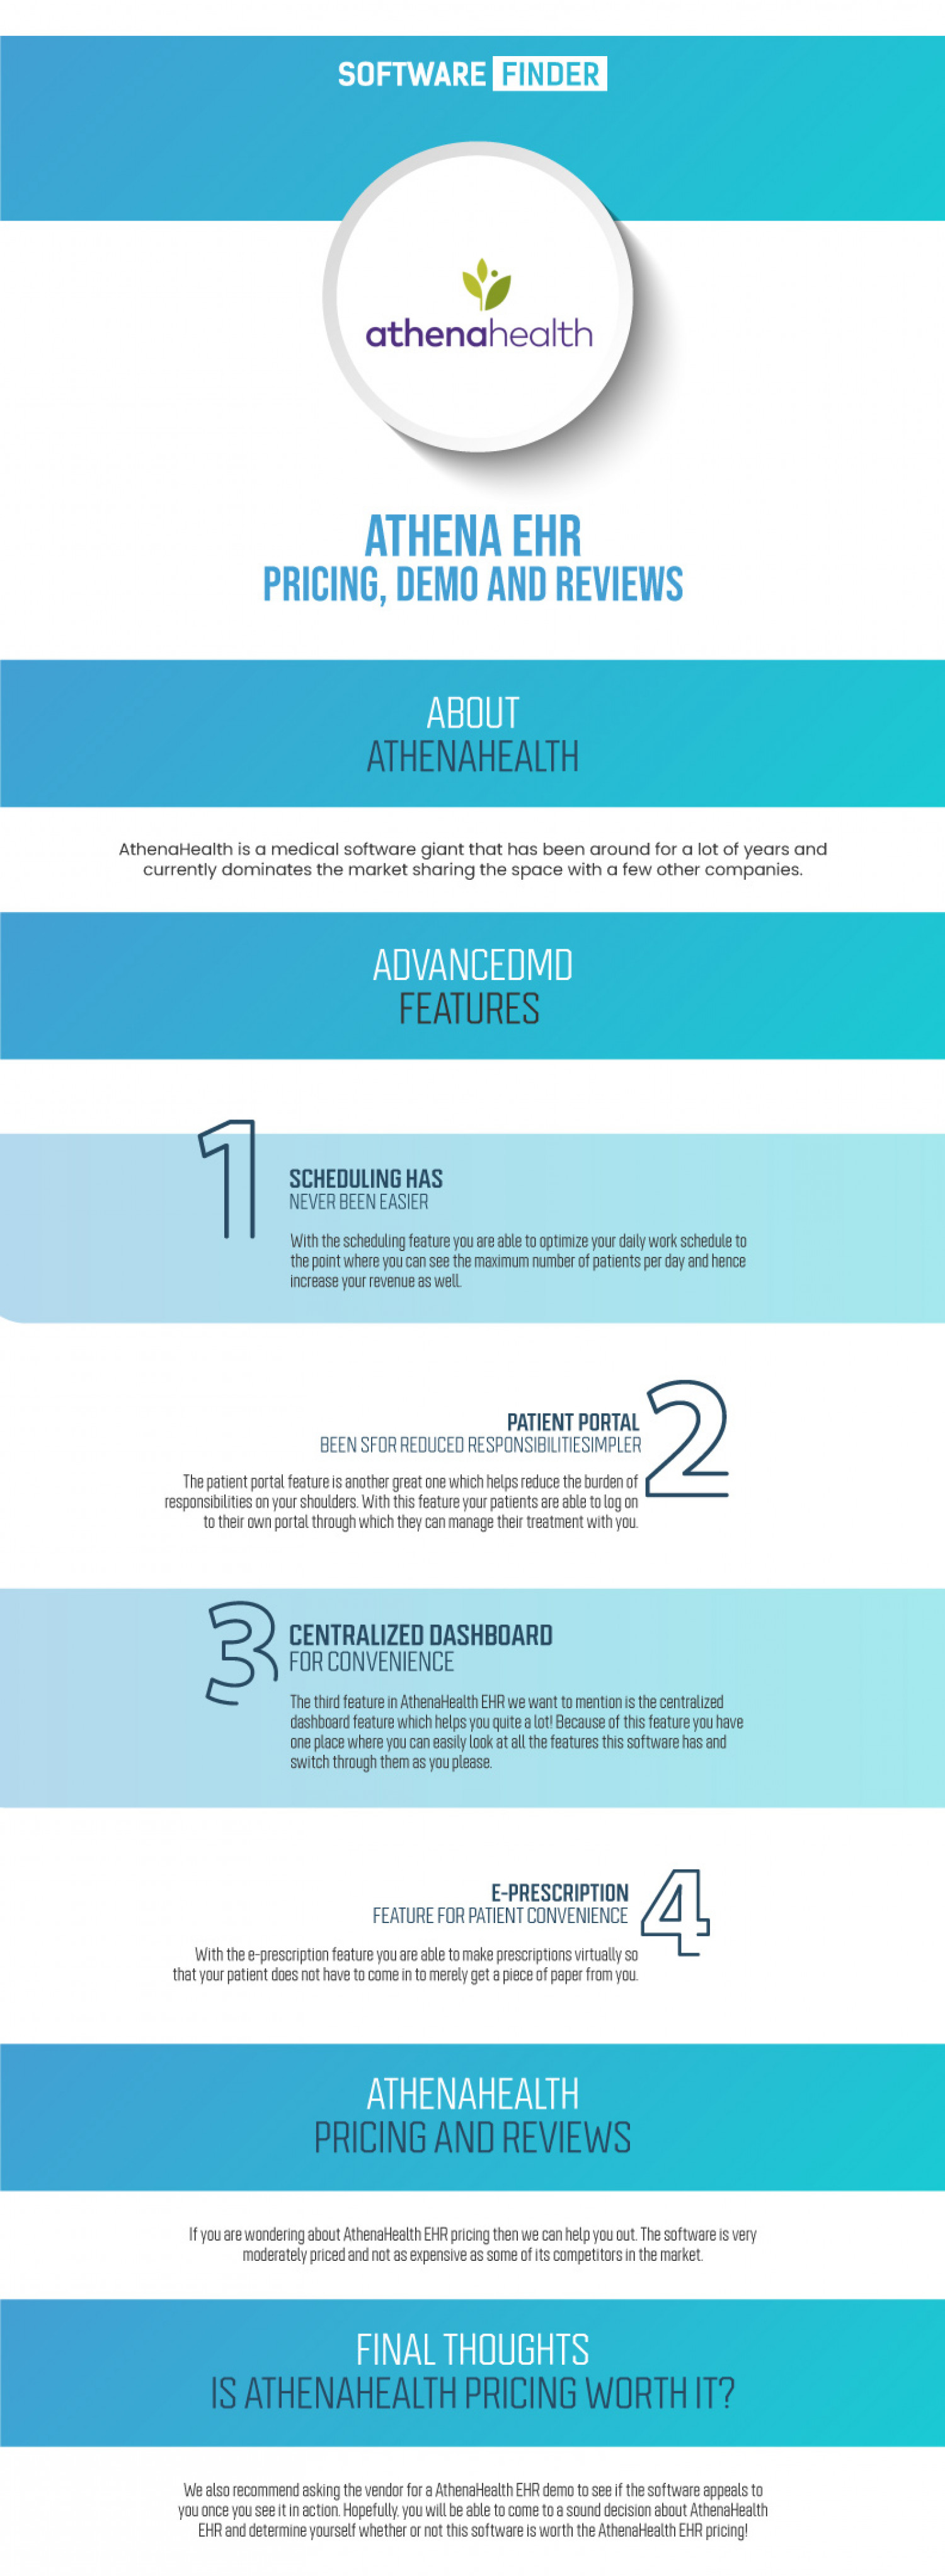 Athena EHR Pricing, Demo & Reviews Infographic